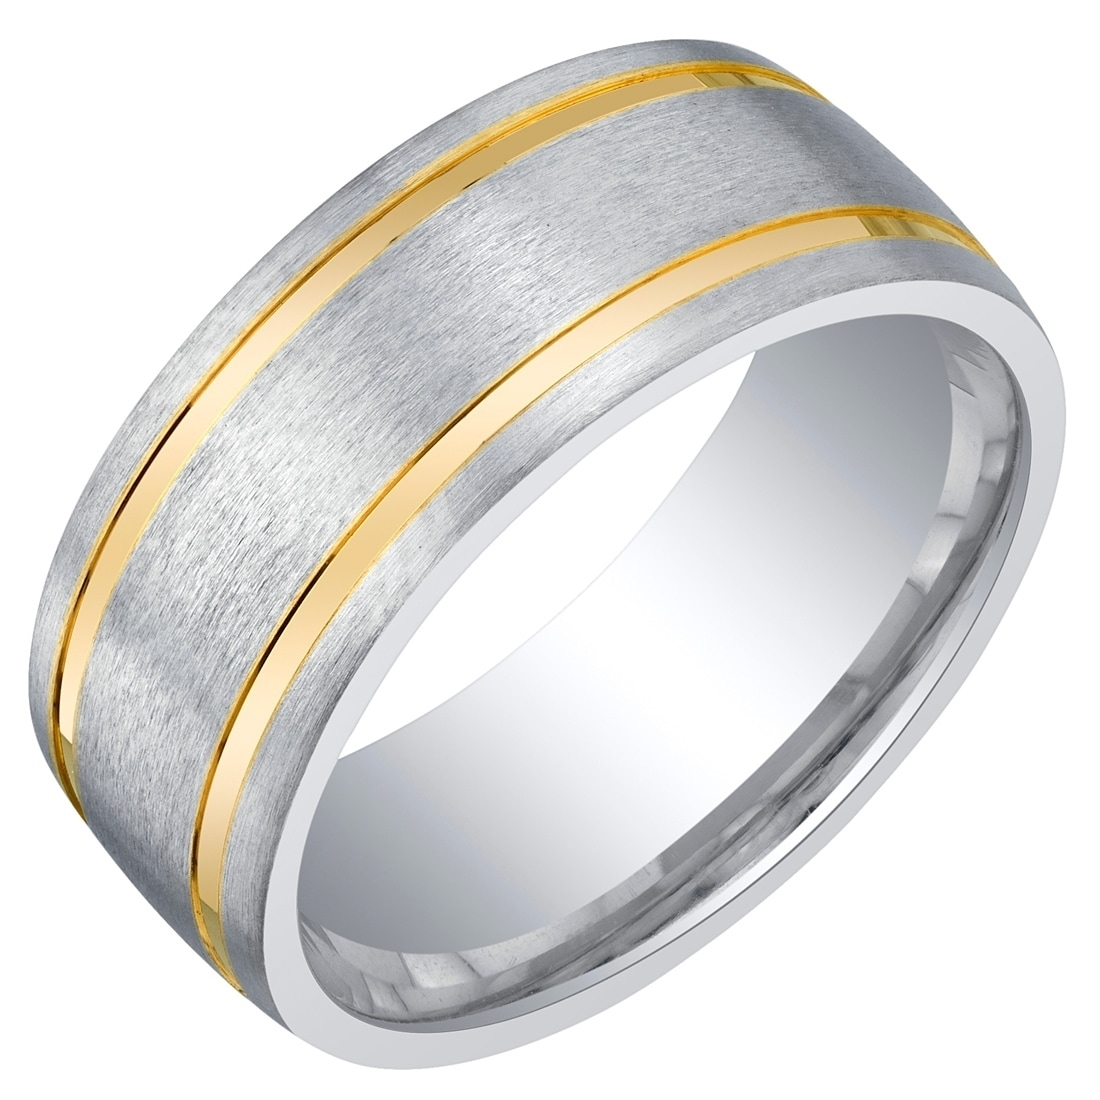 It is just an image of Mens Two-Tone Sterling Silver Wedding Ring Band in Brushed Matte 41mm Comfort Fit